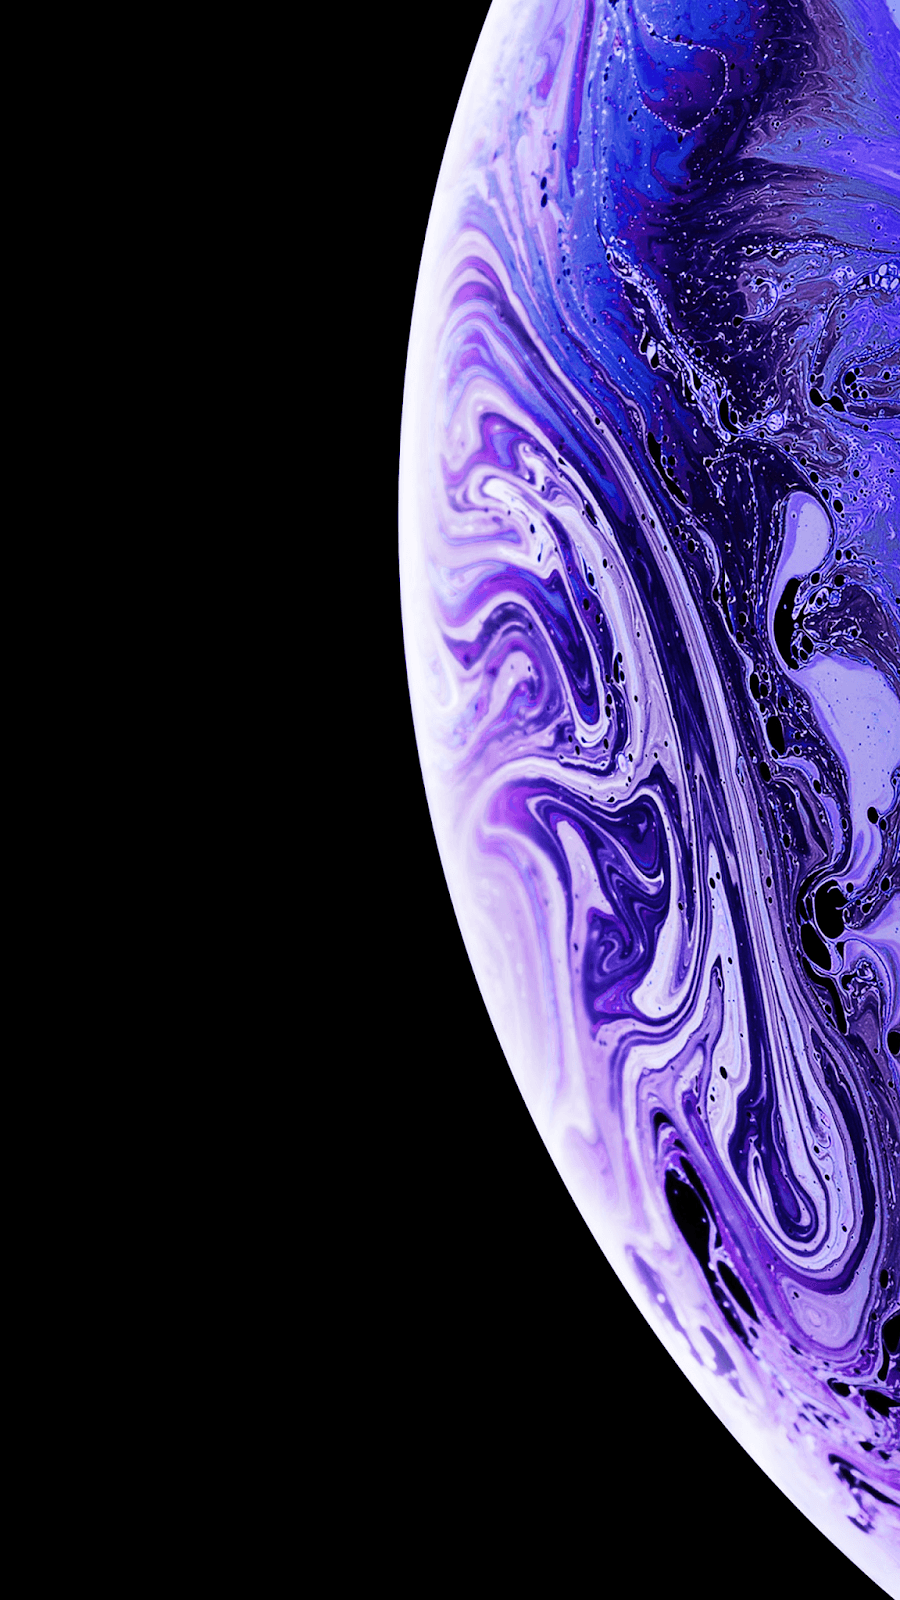 Iphone Xs Max Uhd Wallpapers Wallpaper Cave